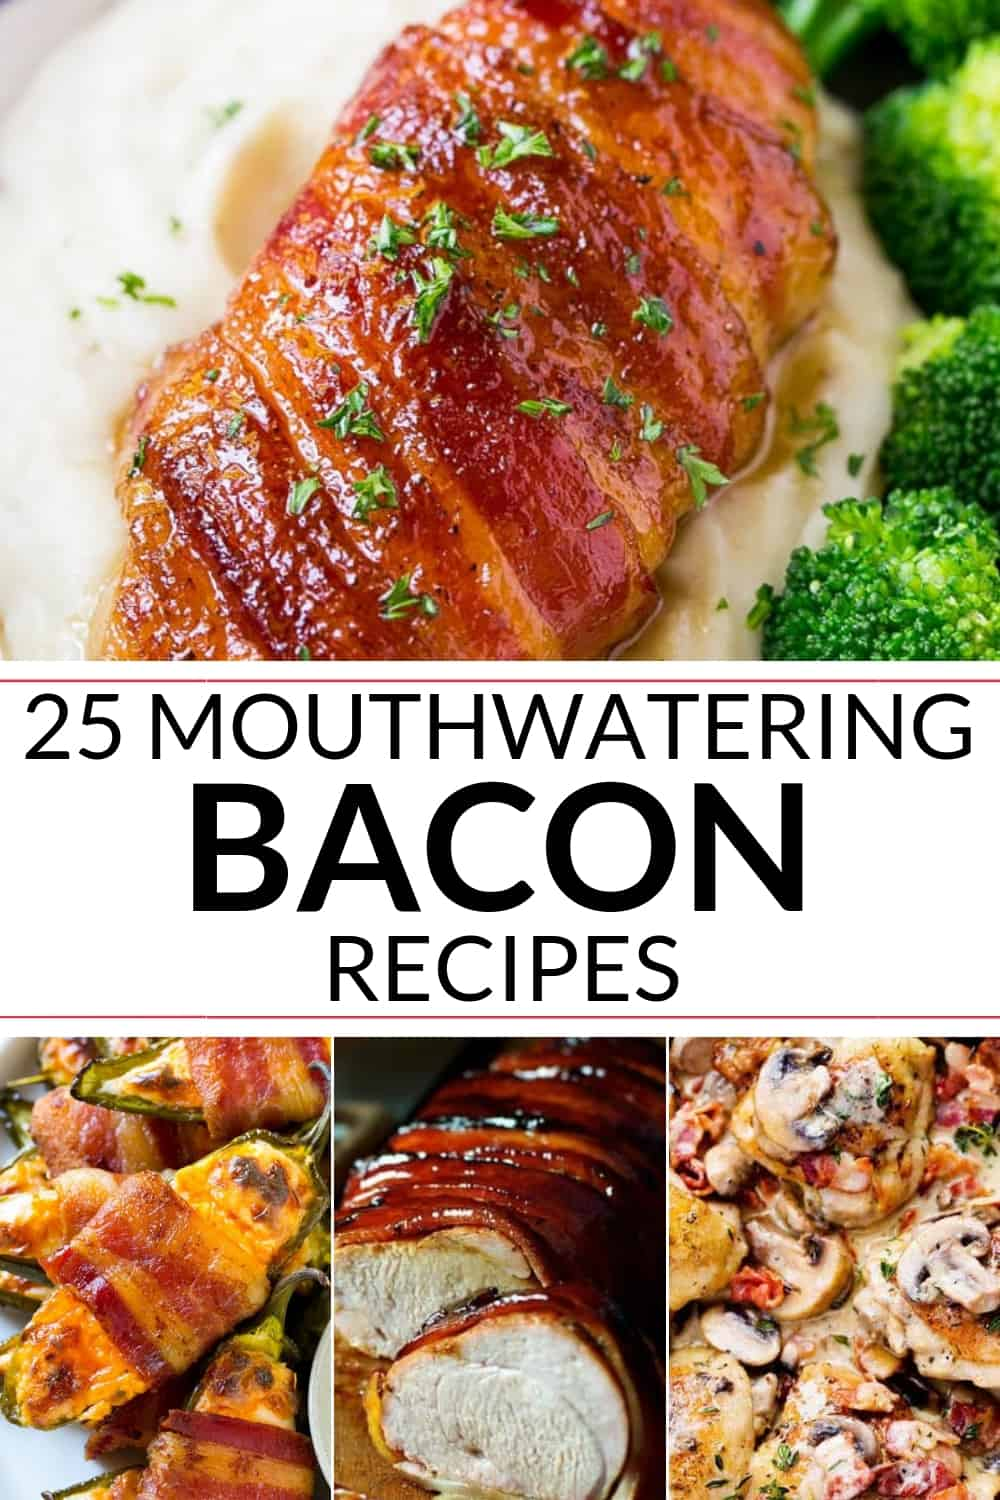 Collection of mouth watering Bacon recipes